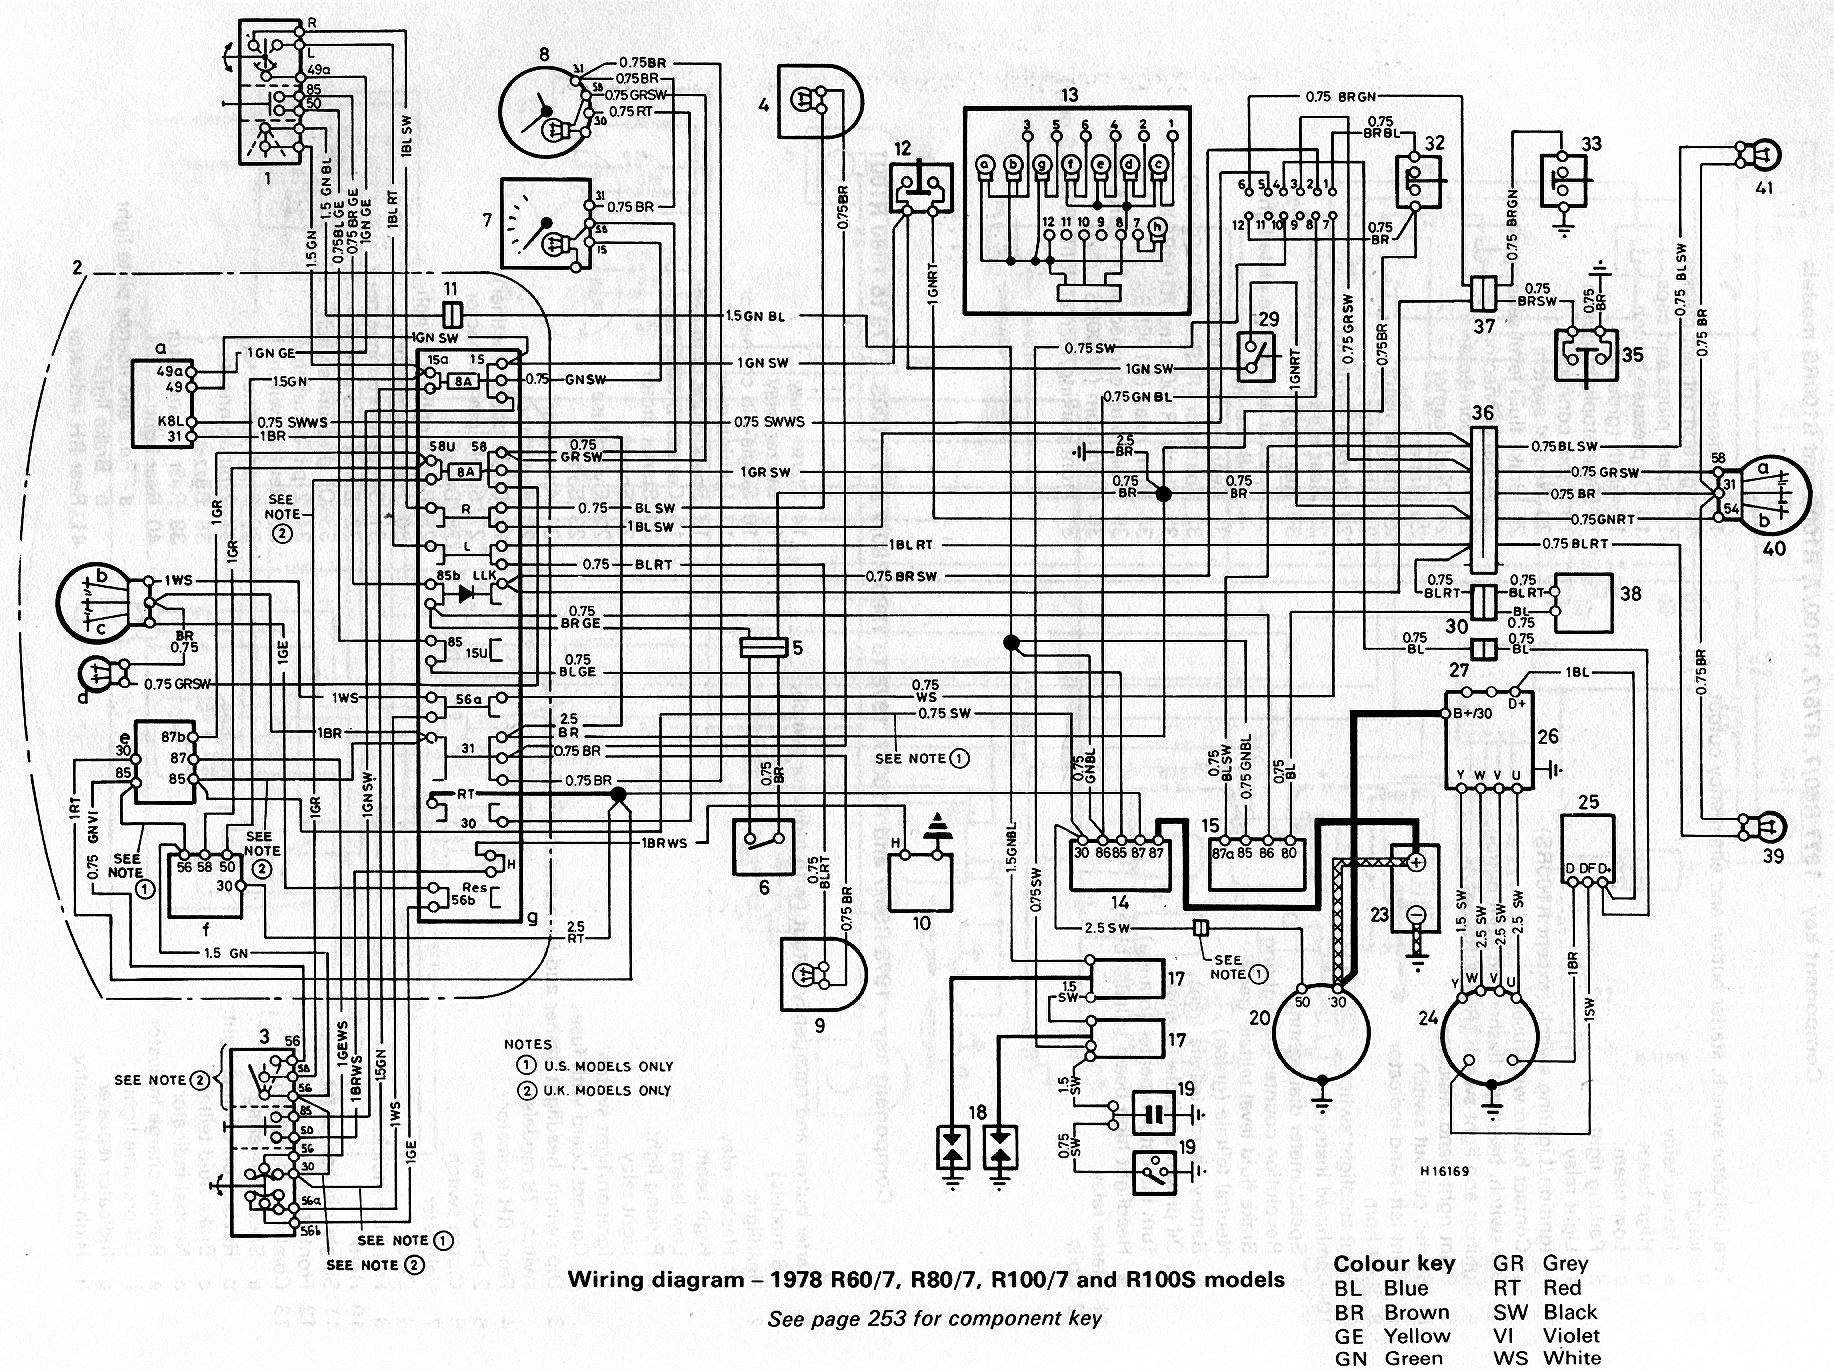 Bmw R80 7 Wiring Diagram